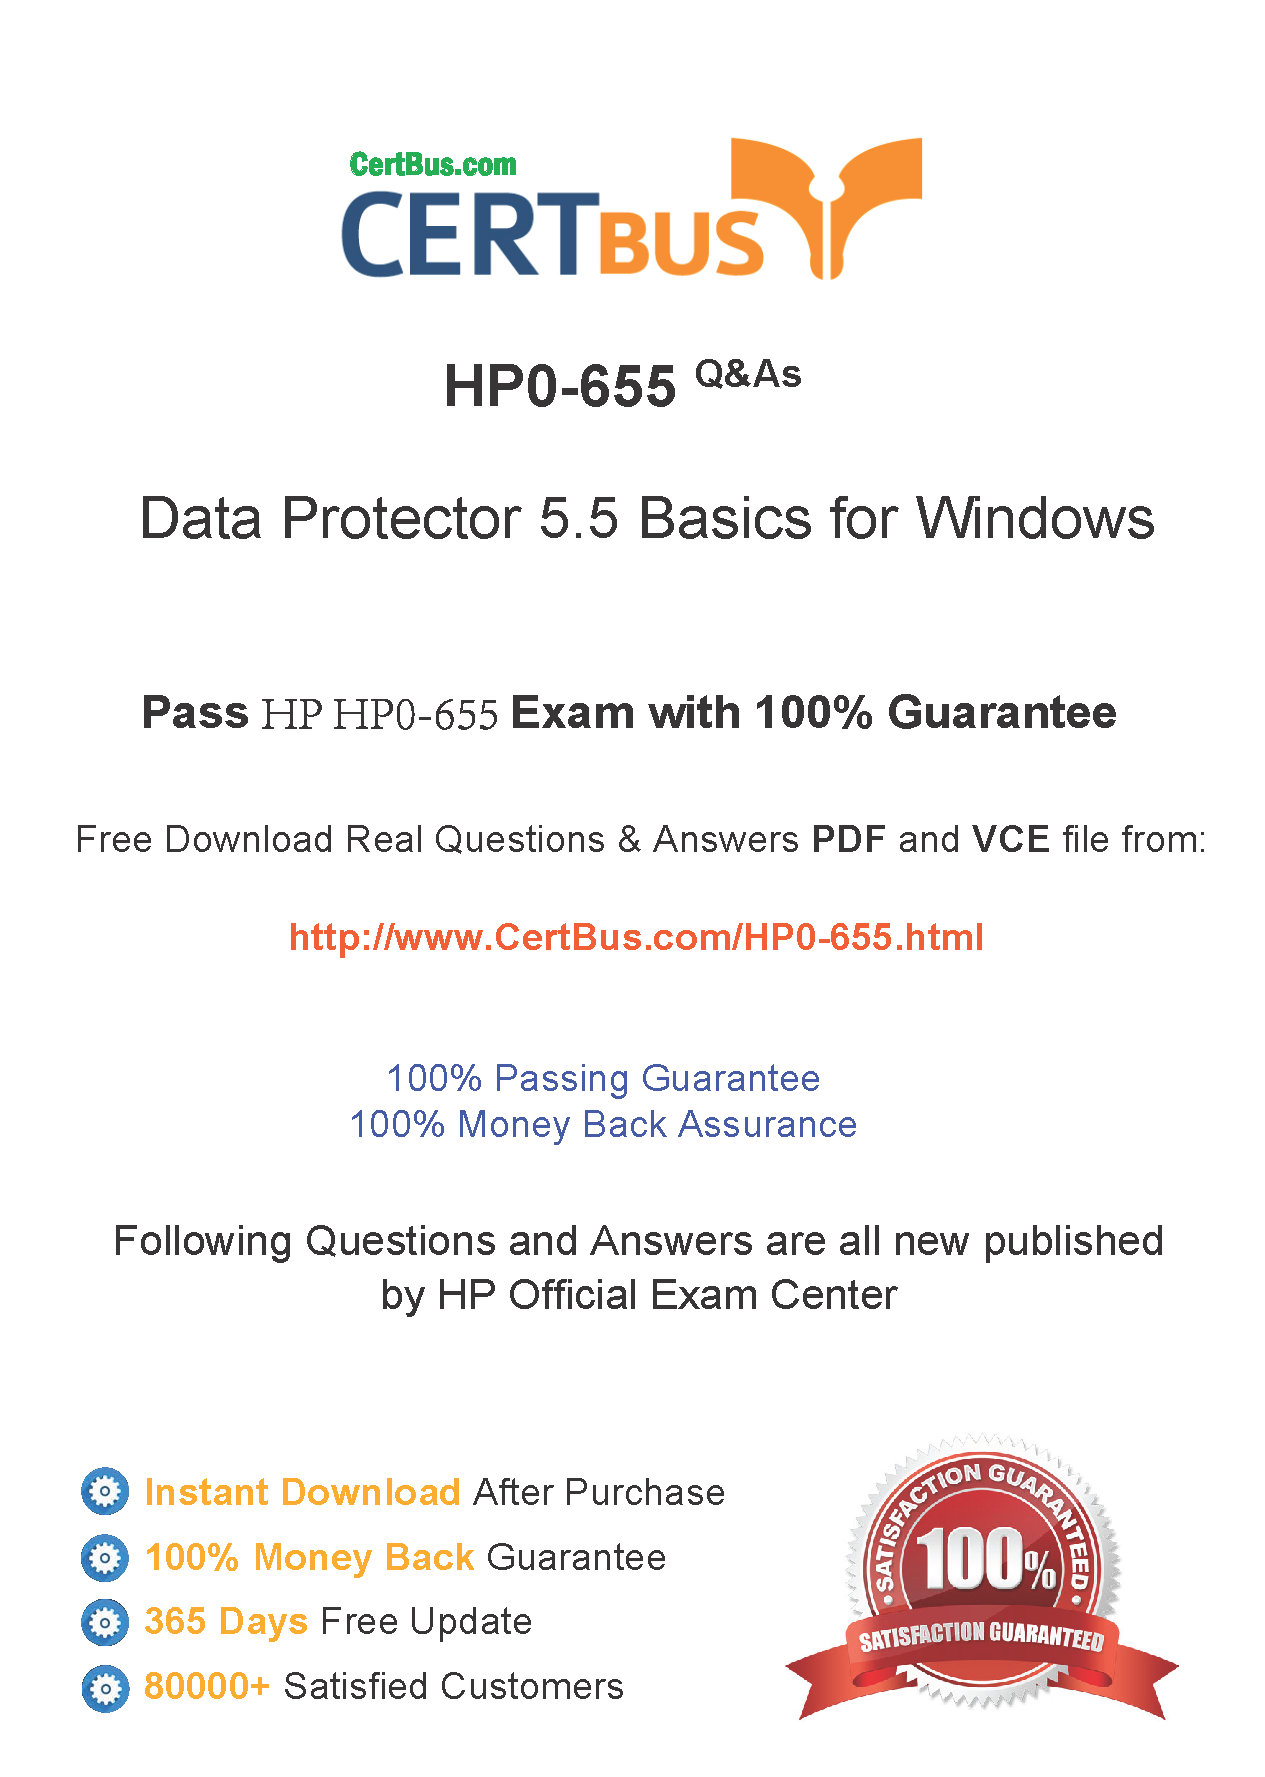 Candidate need to purchase the latest HP HP0-655 Dumps with latest HP HP0-655 Exam Questions. Here is a suggestion for you: Here you can find the latest HP HP0-655 New Questions in their HP HP0-655 PDF, HP HP0-655 VCE and HP HP0-655 braindumps. Their HP HP0-655 exam dumps are with the latest HP HP0-655 exam question. With HP HP0-655 pdf dumps, you will be successful. Highly recommend this HP HP0-655 Practice Test.